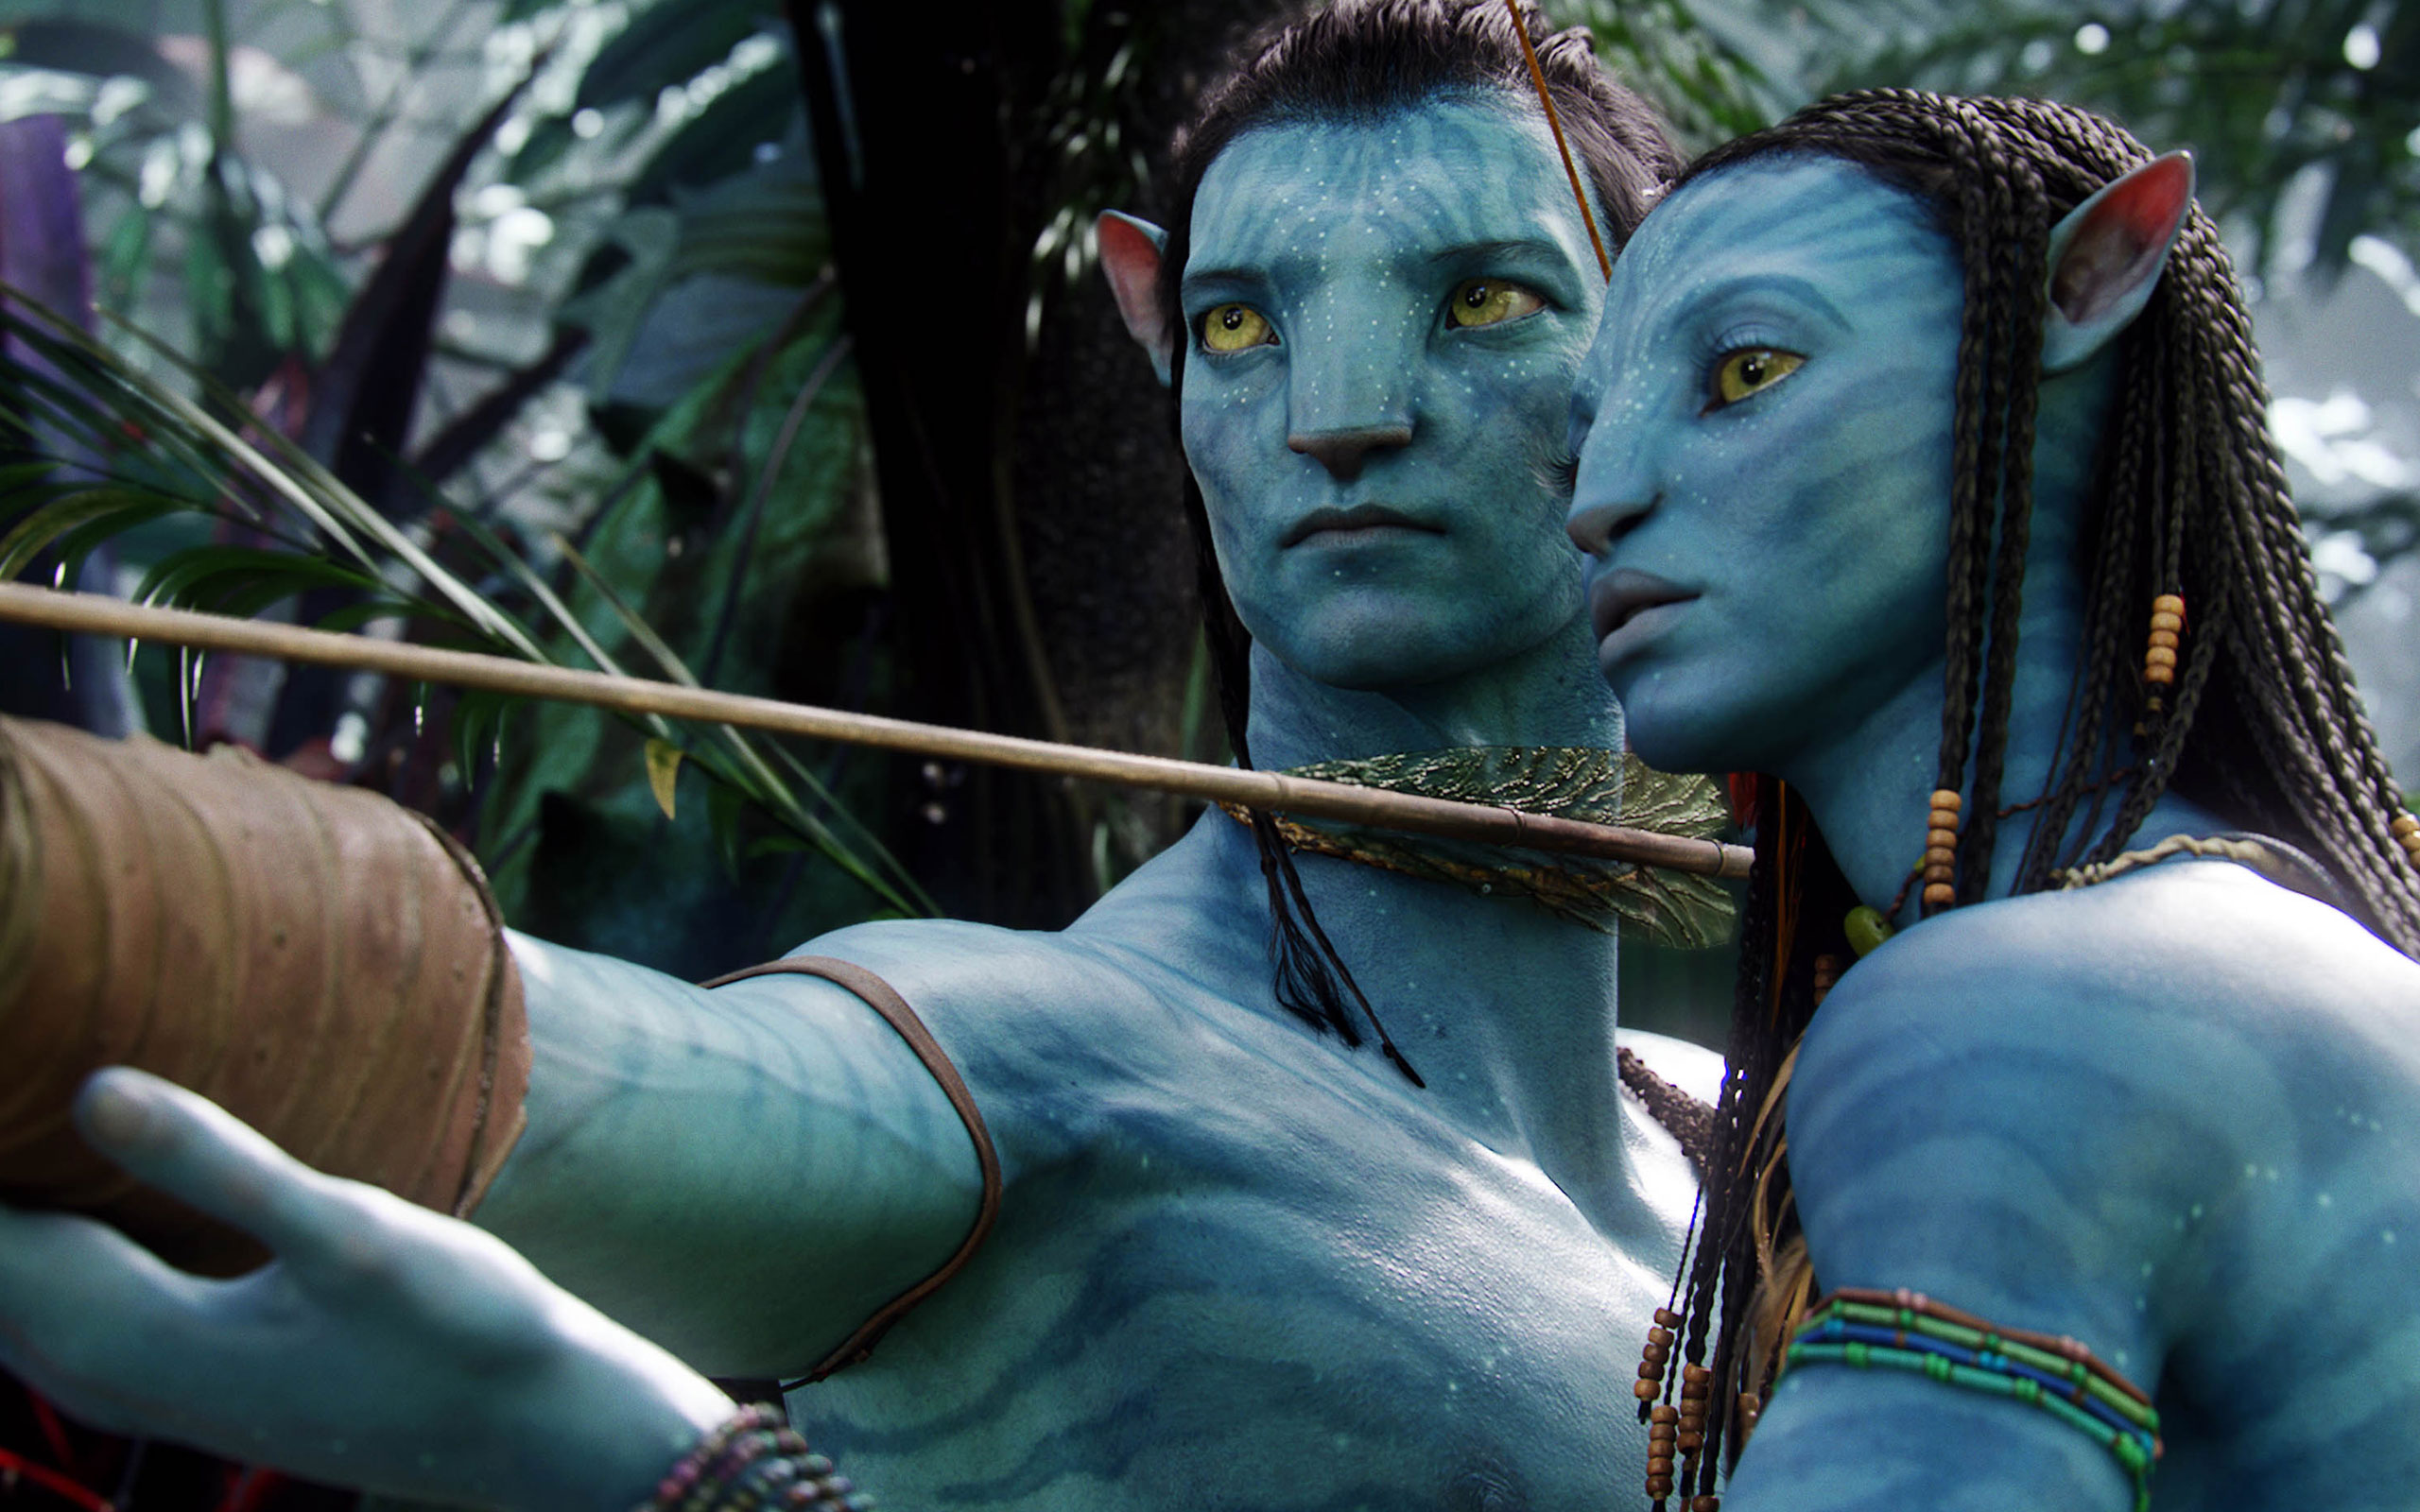 Jake Sully & Neytiri in Avatar